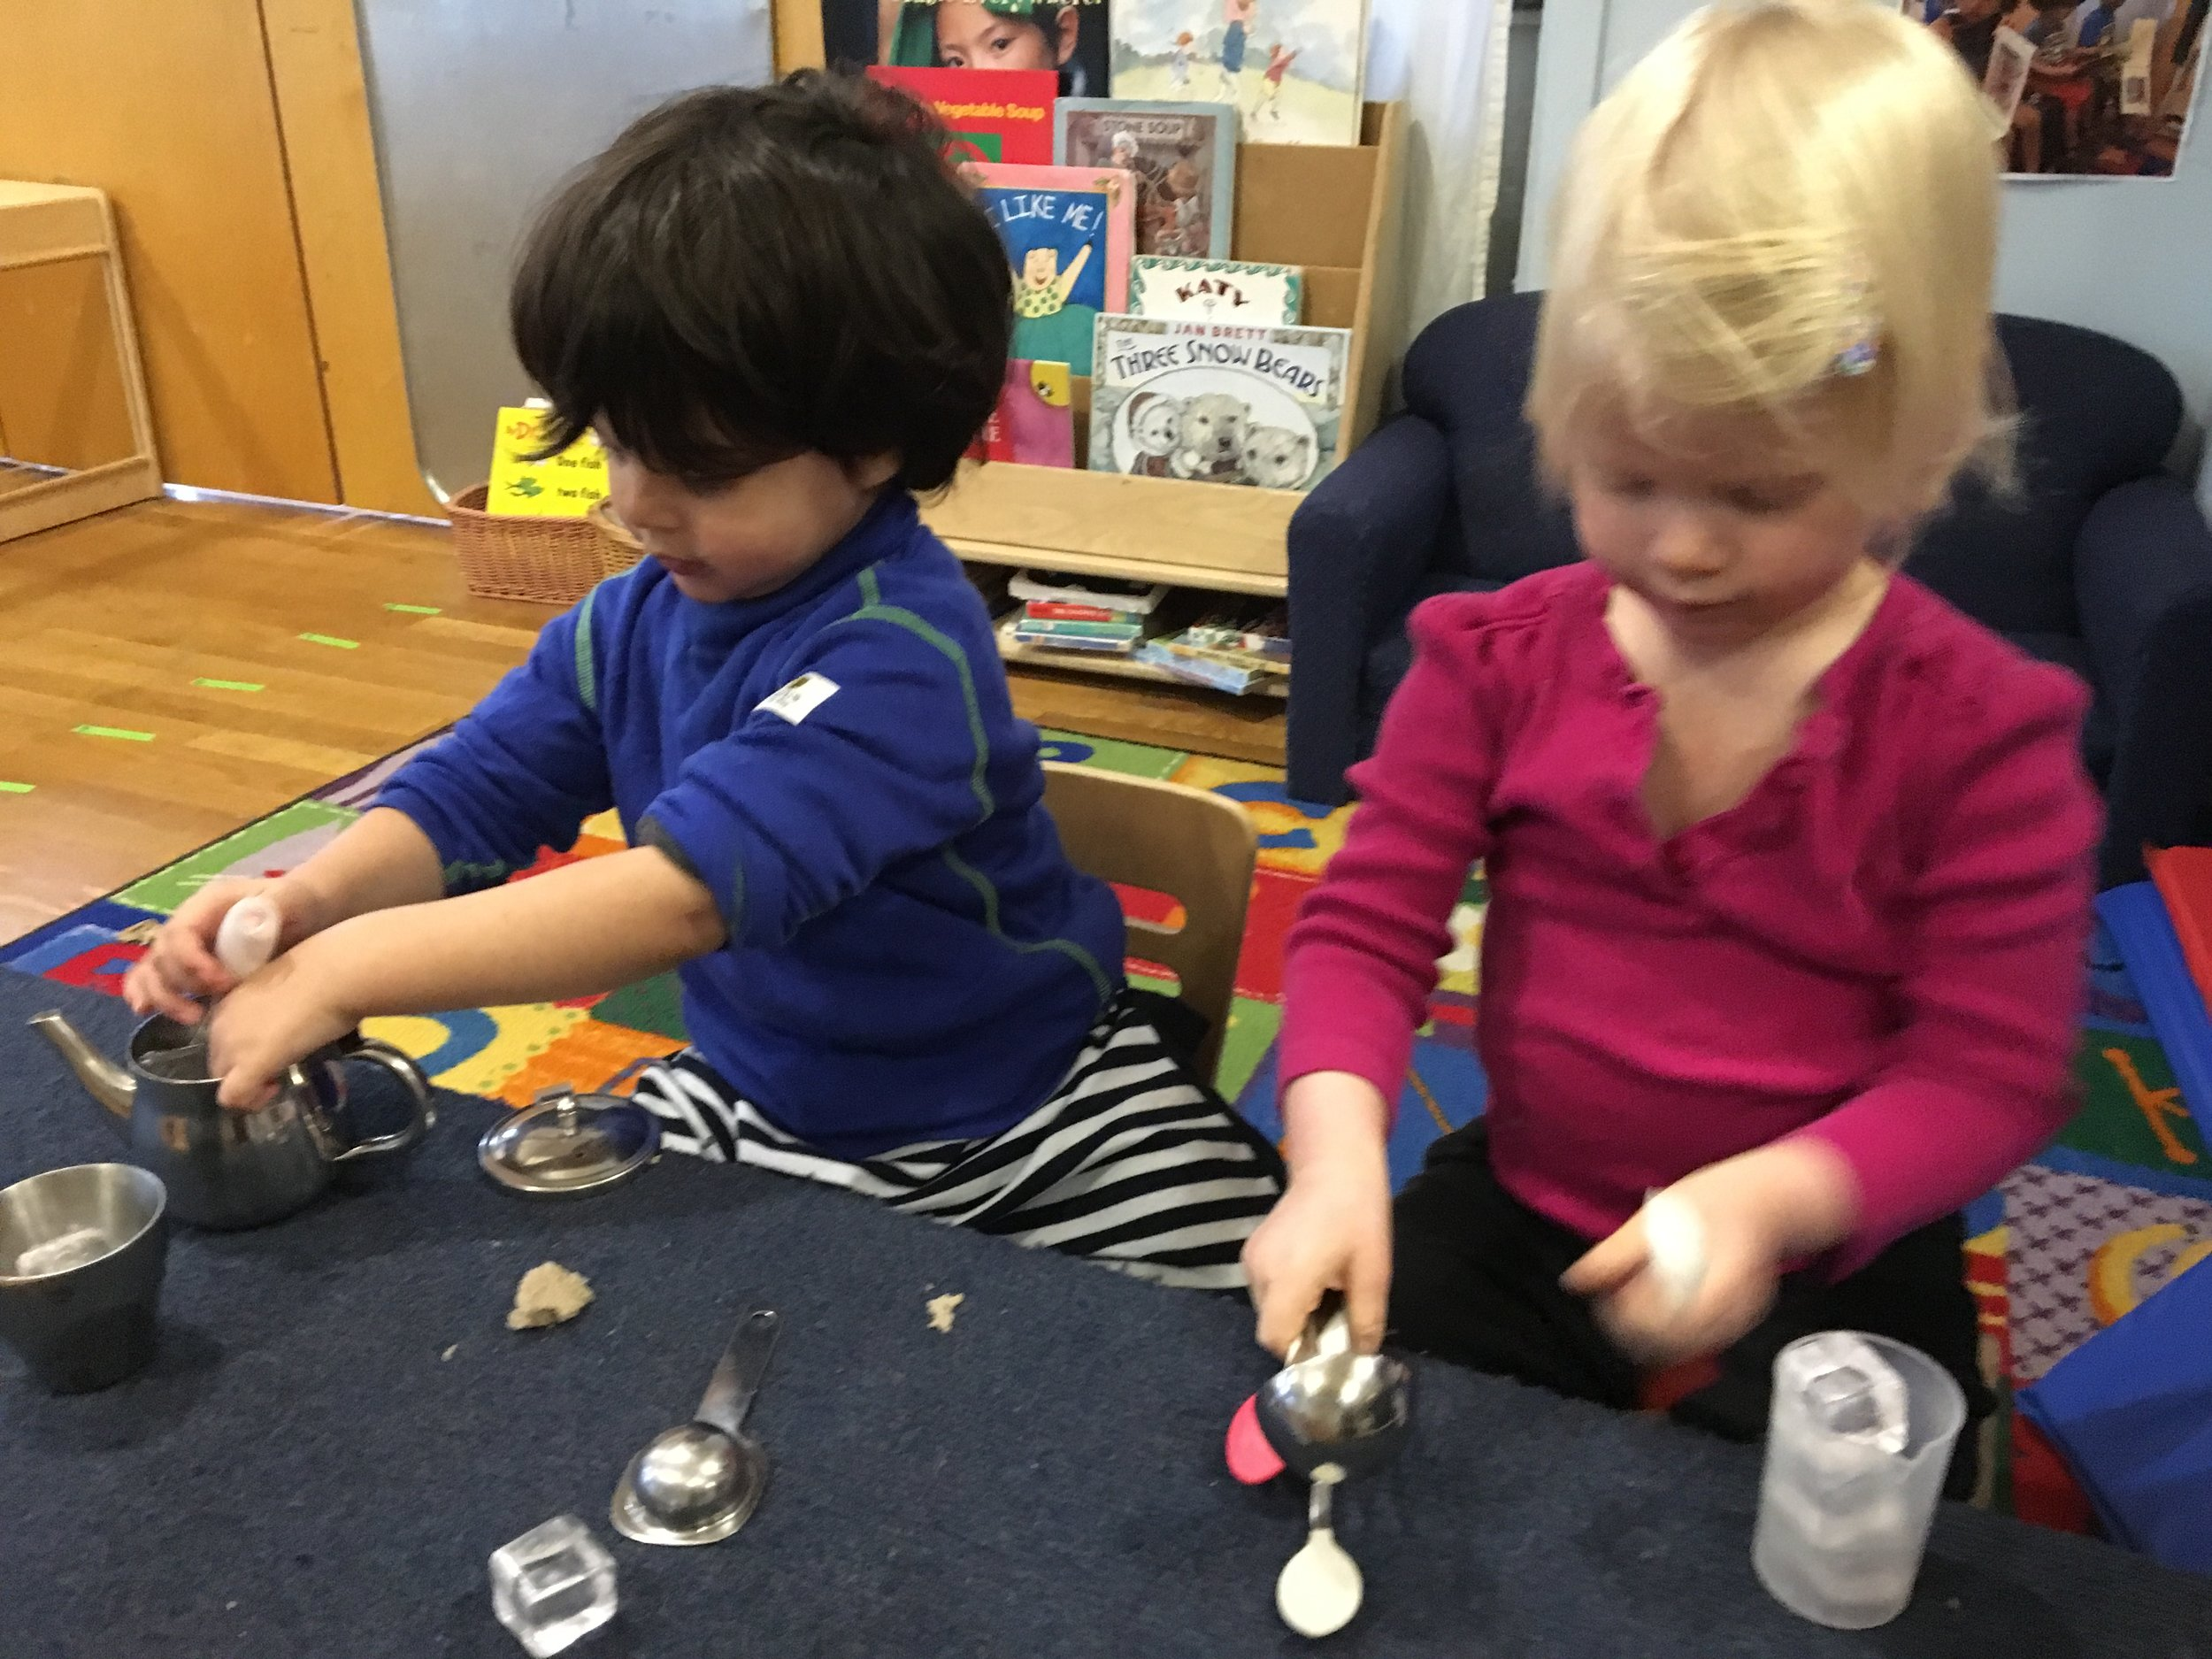 Soraya and Tiago are using materials from dramatic play-they are building social skills-learning how to play together in their pretend play